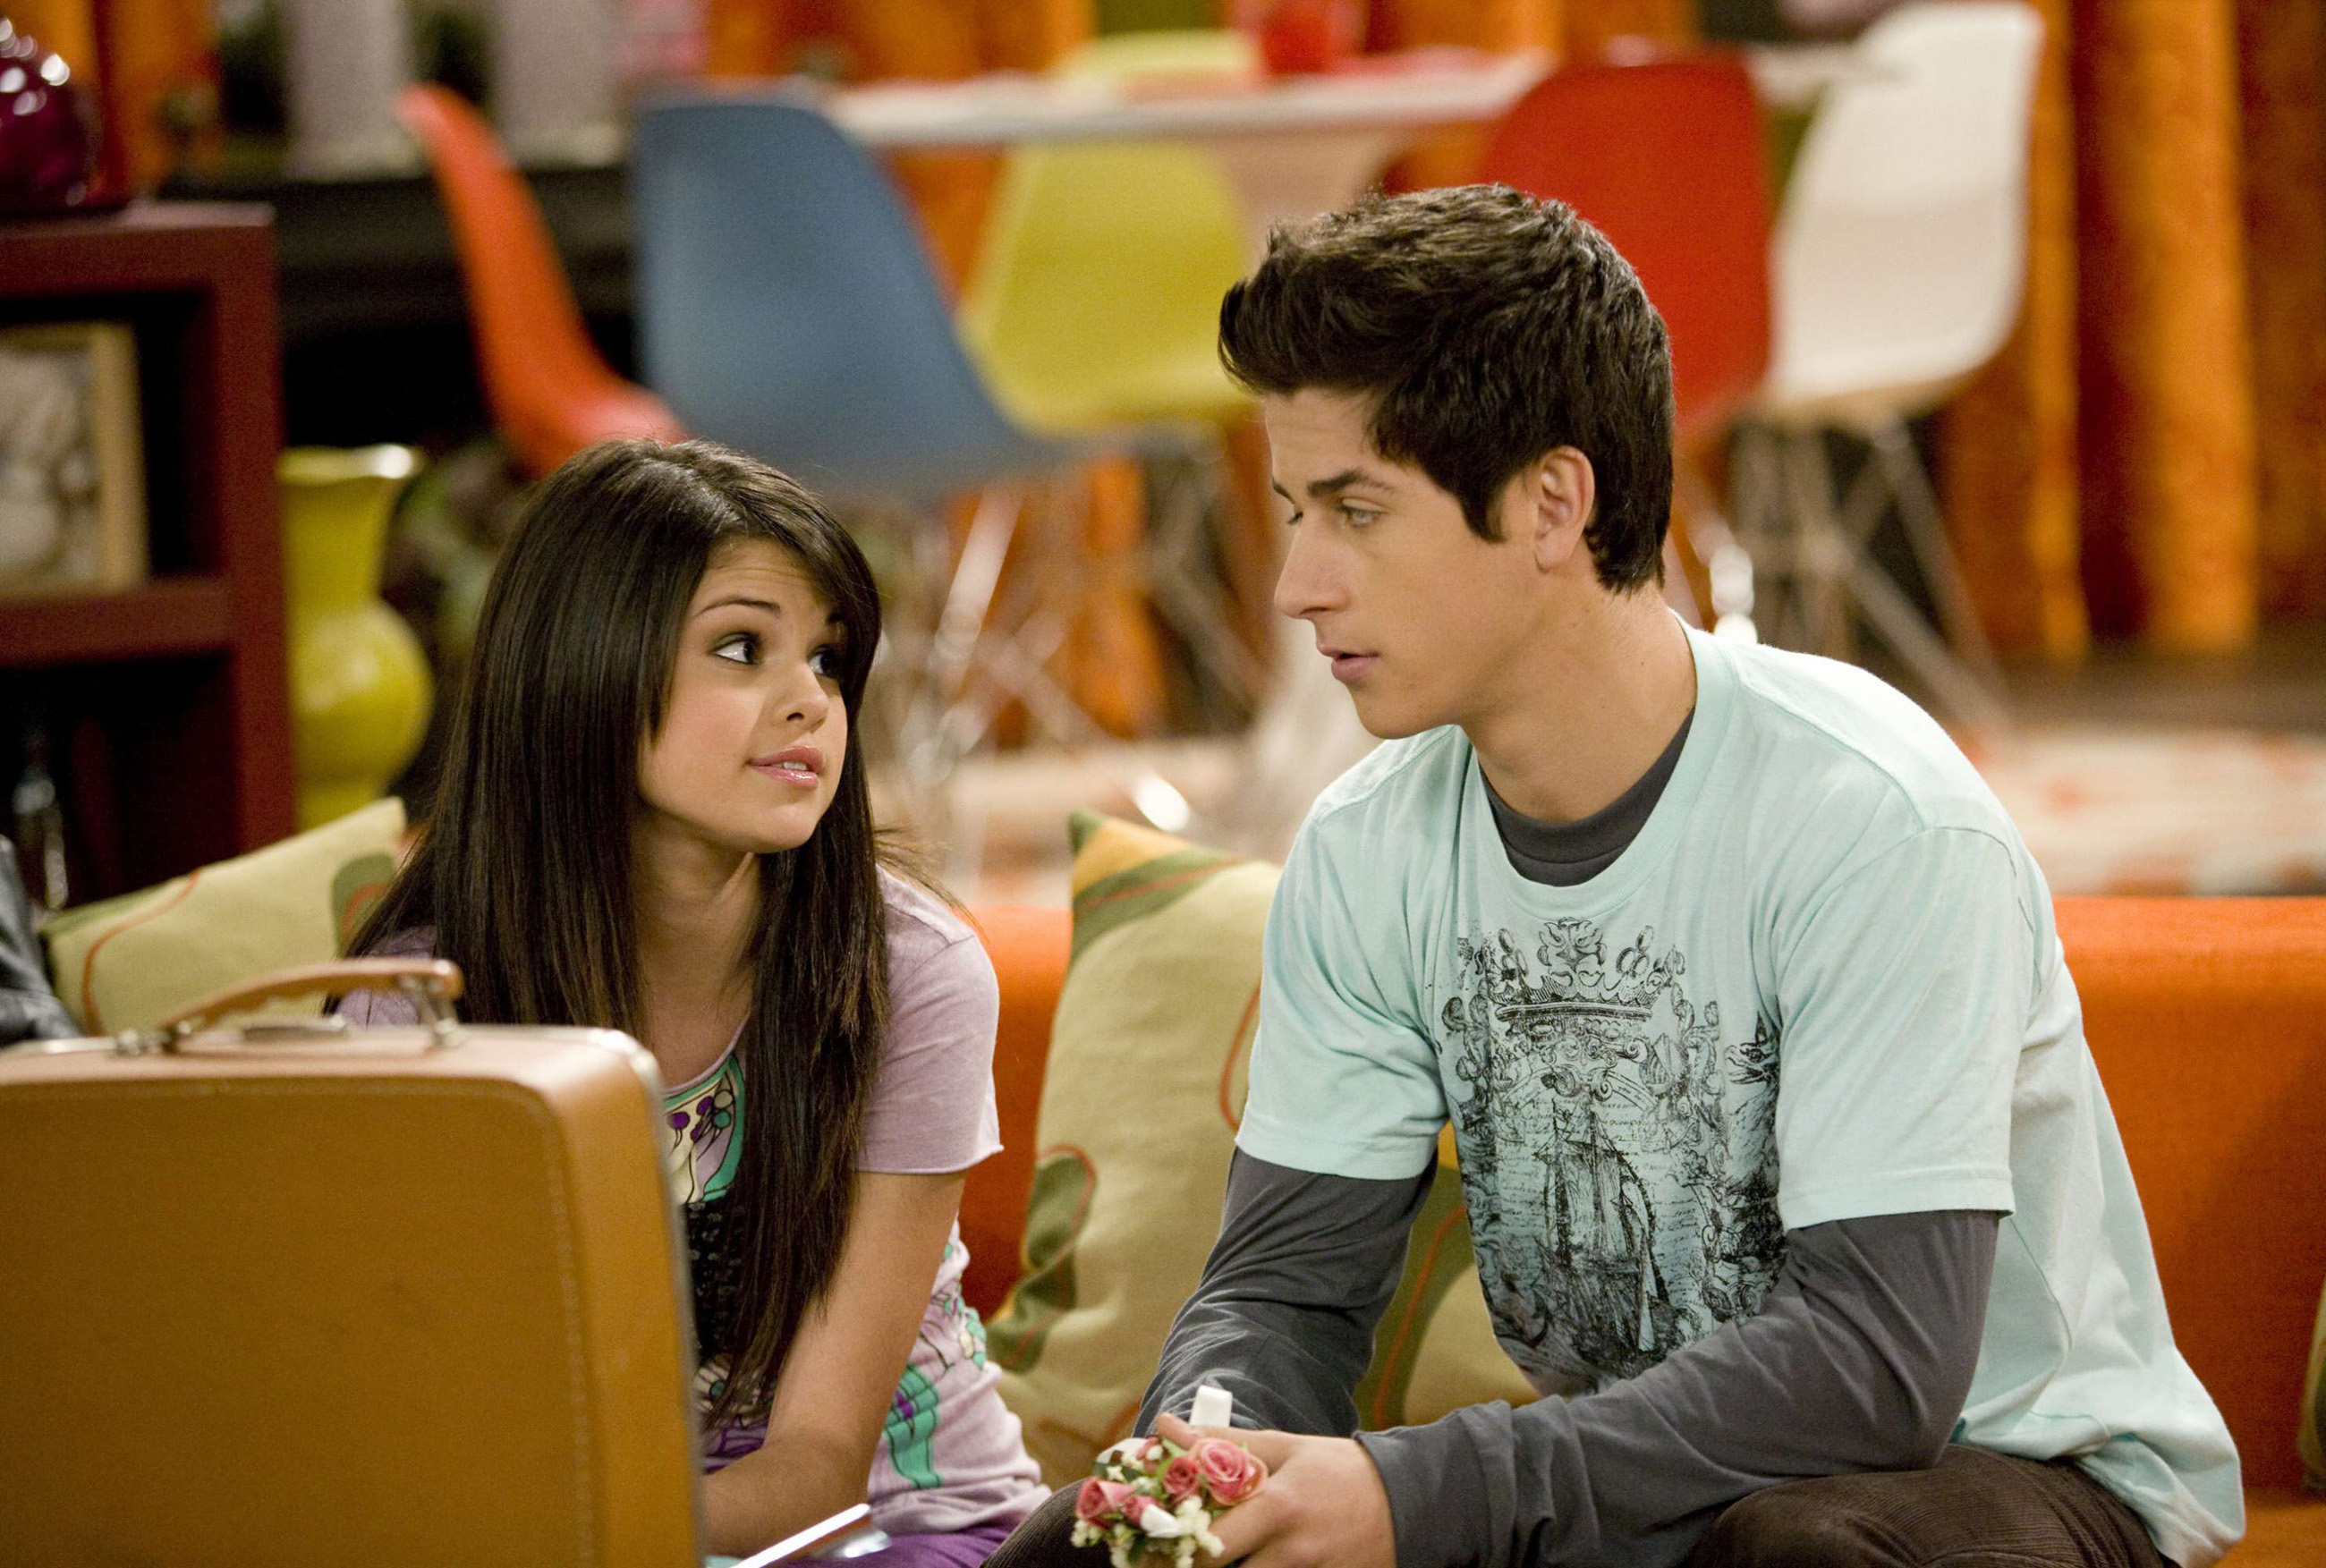 Beware wolf wizards of waverly place wiki for The waverly